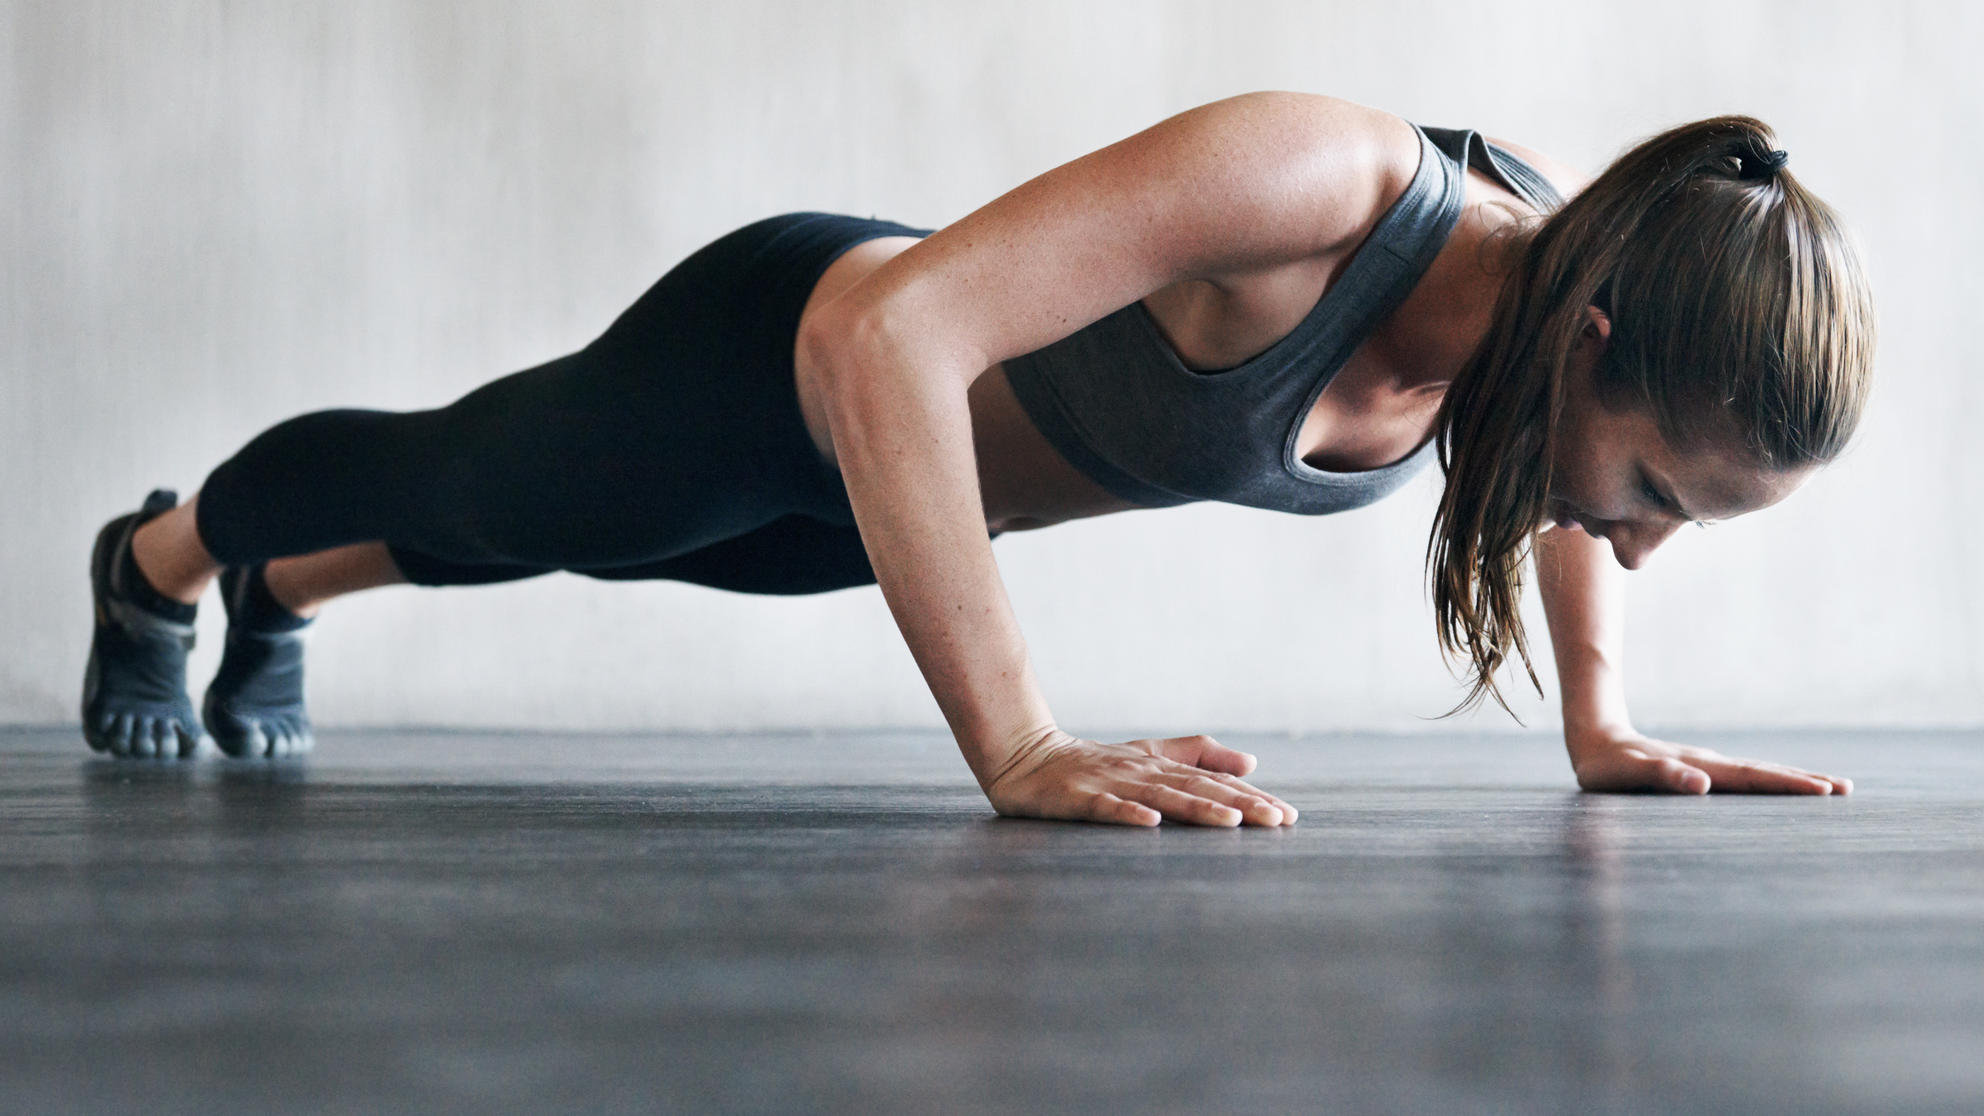 These 2 'Microworkouts' Are Super Short and Majorly Effective